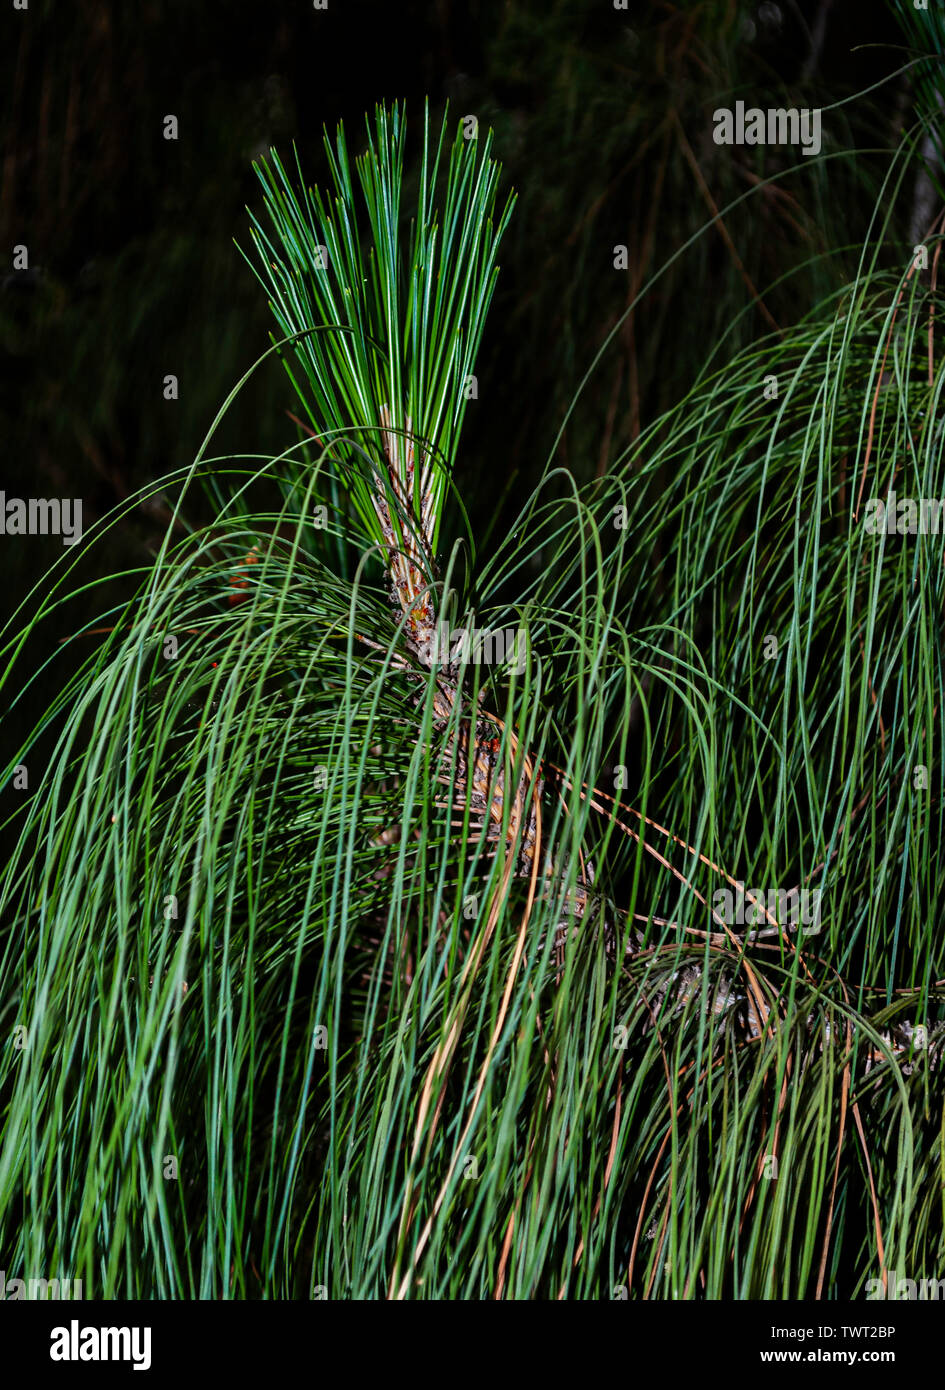 closeup of the end of a branch of longleaf pine showing new growth and long gracefully drooping needles on a nearly black background - Stock Image